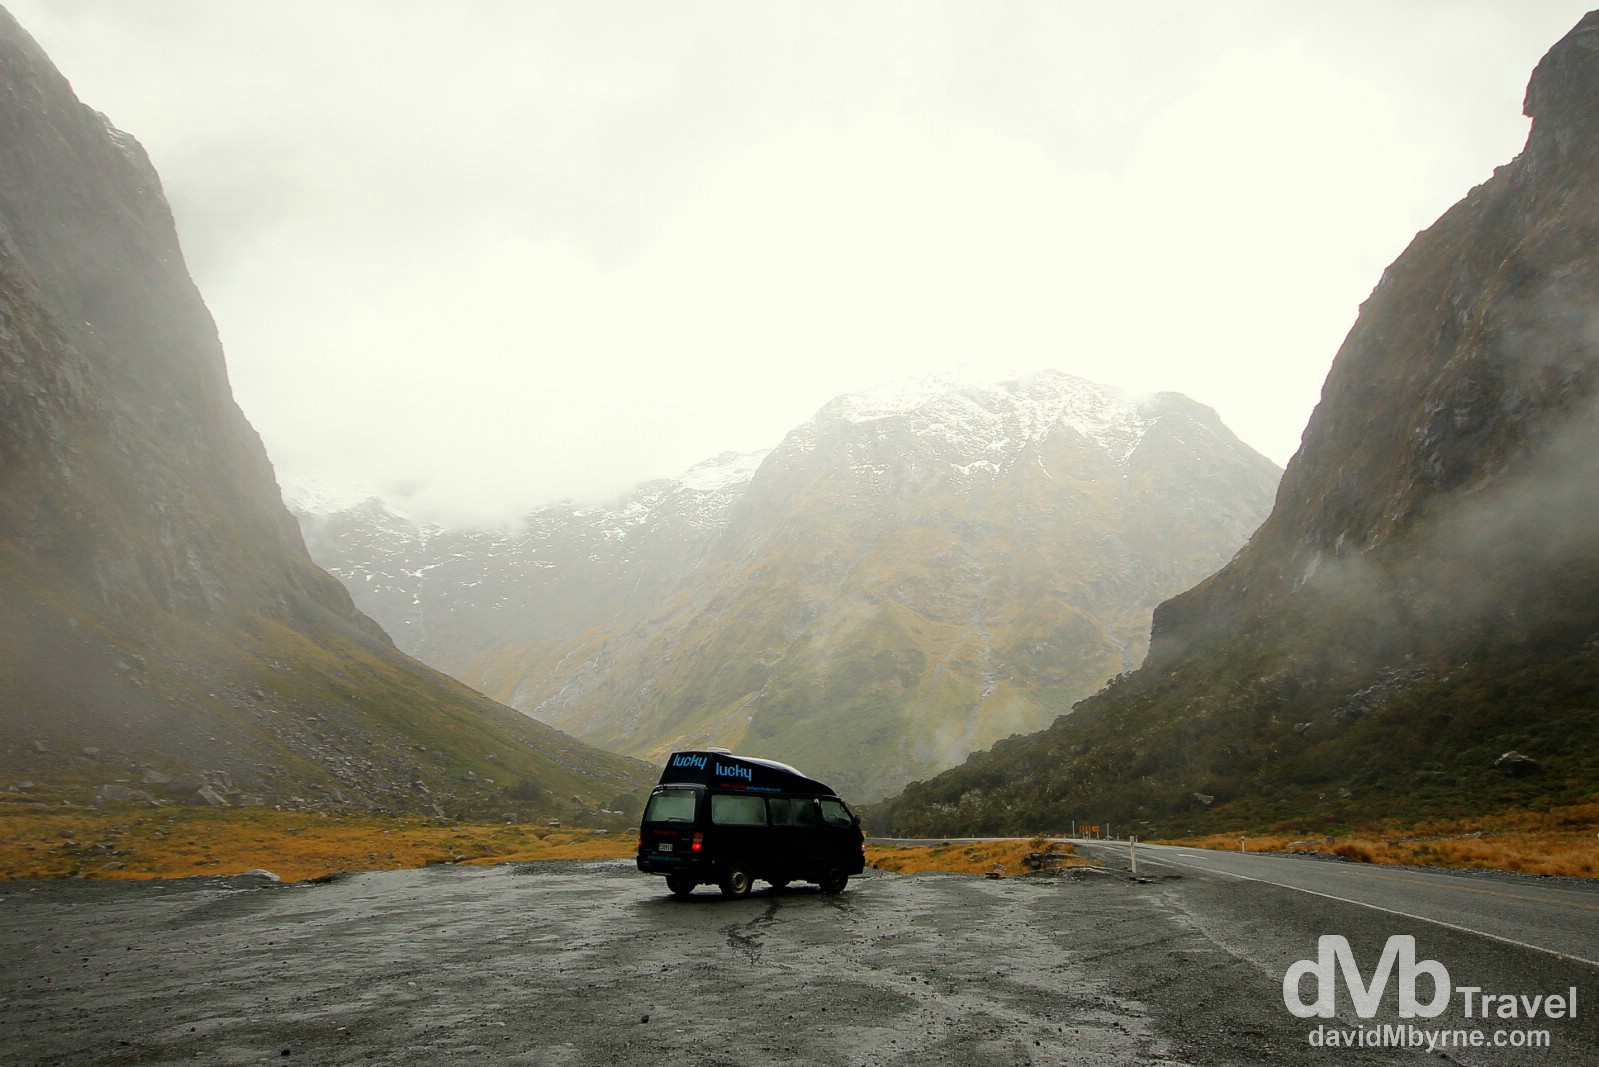 A camper van parked outside the eastern entrance to the Homer Tunnel in Fiordland, South Island, New Zealand. May 26th 2012.